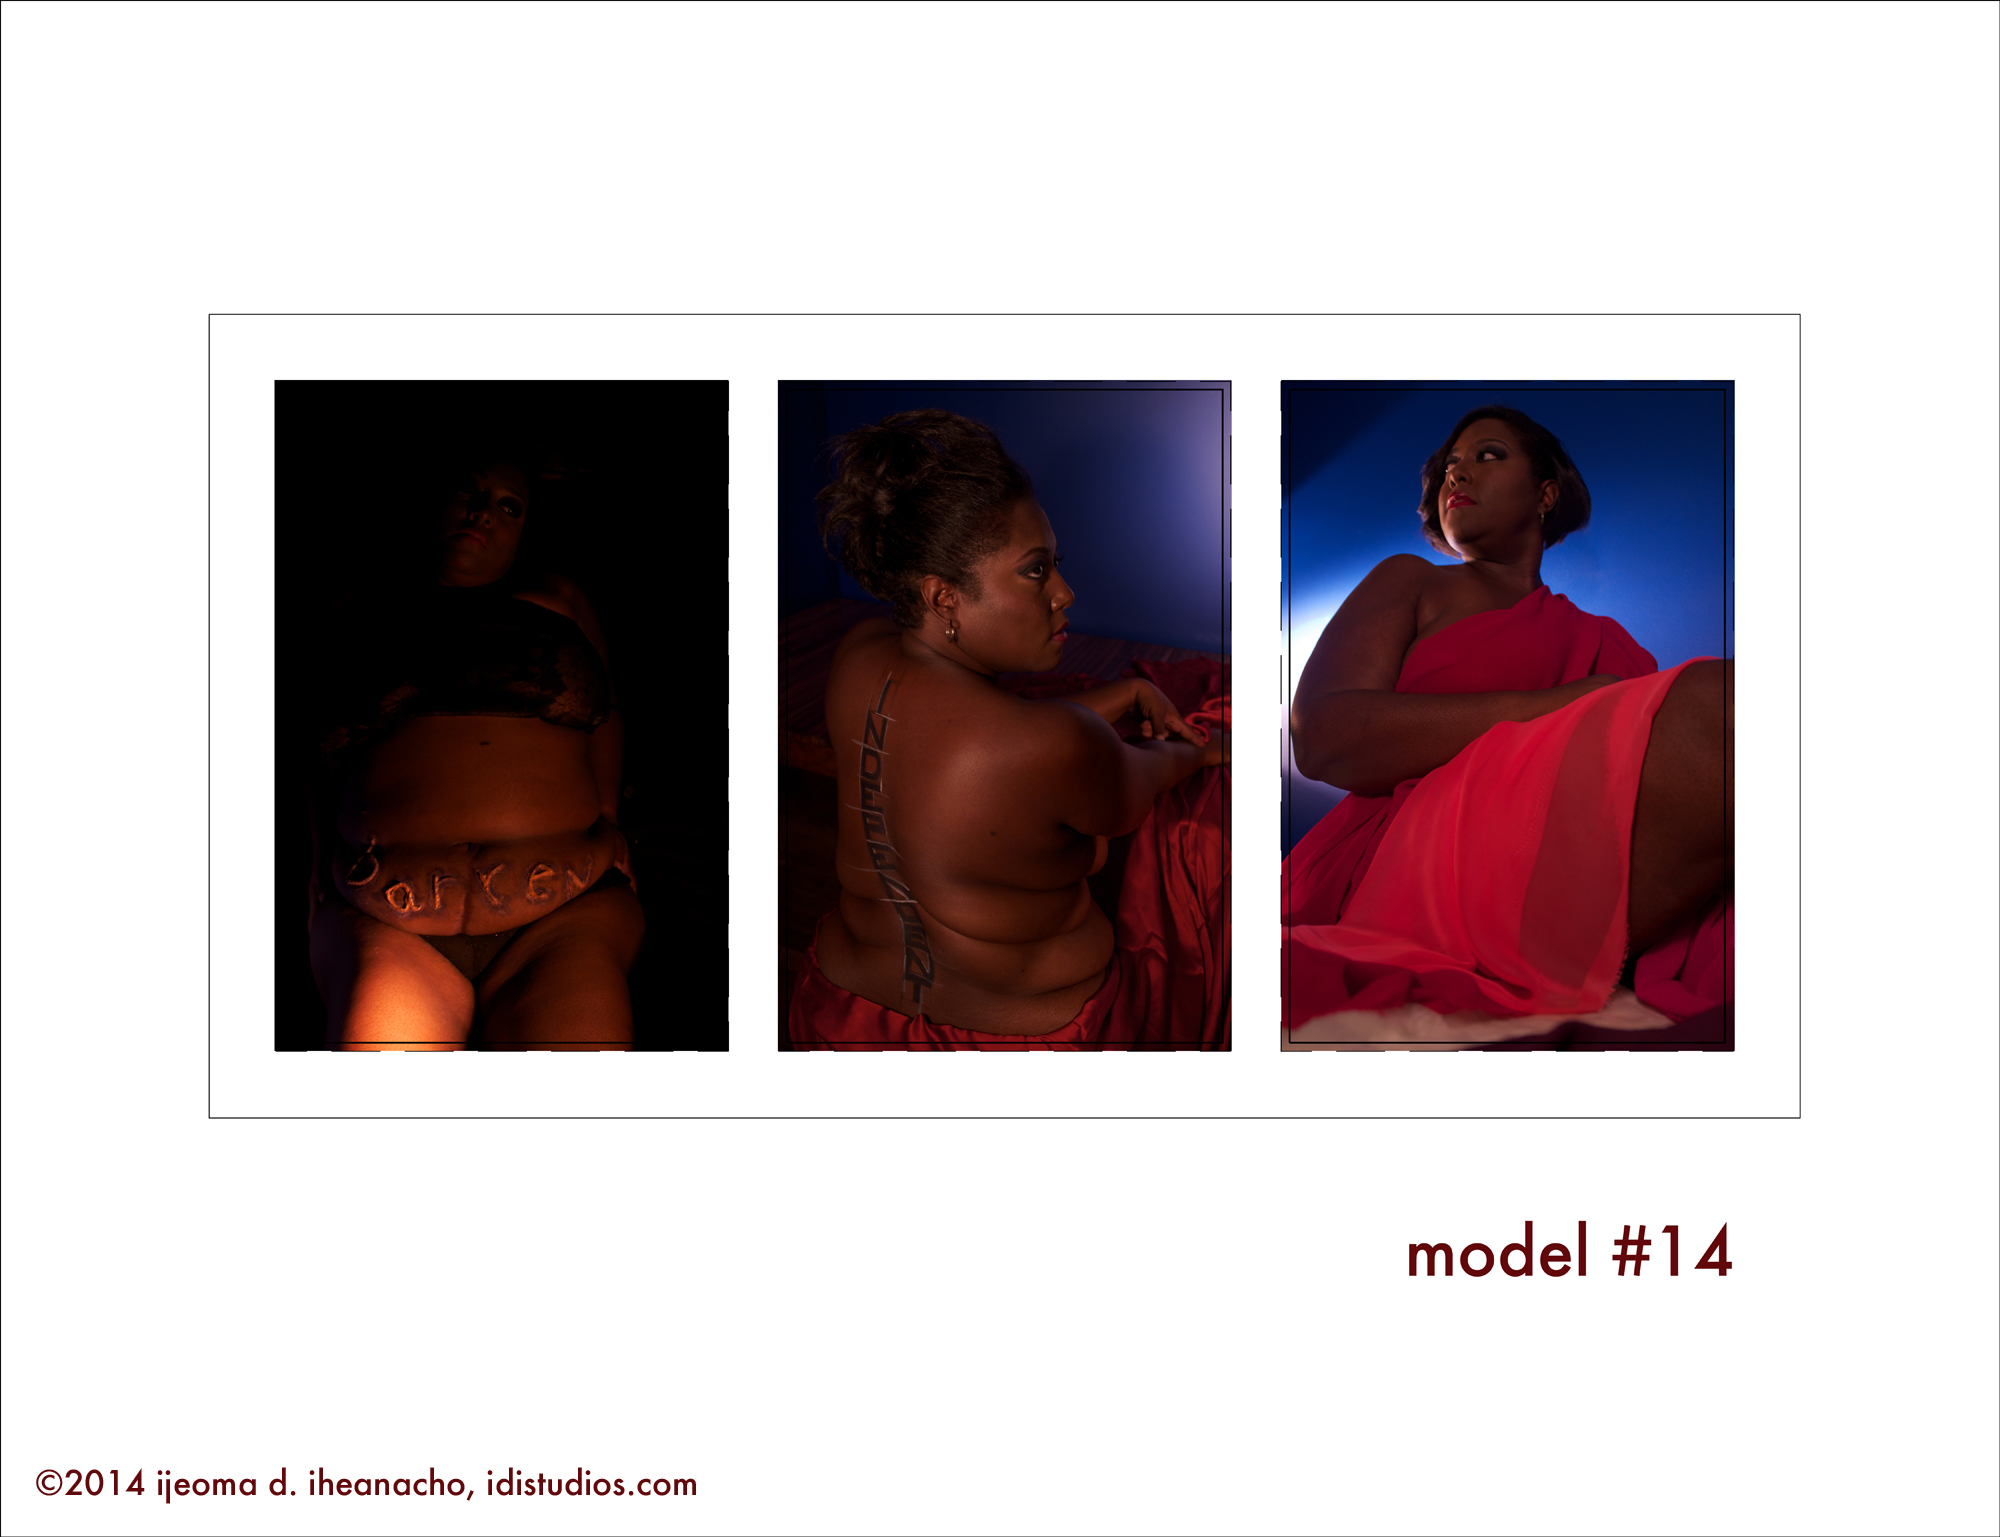 the reImagining Series: Model #14 Gallery Plate